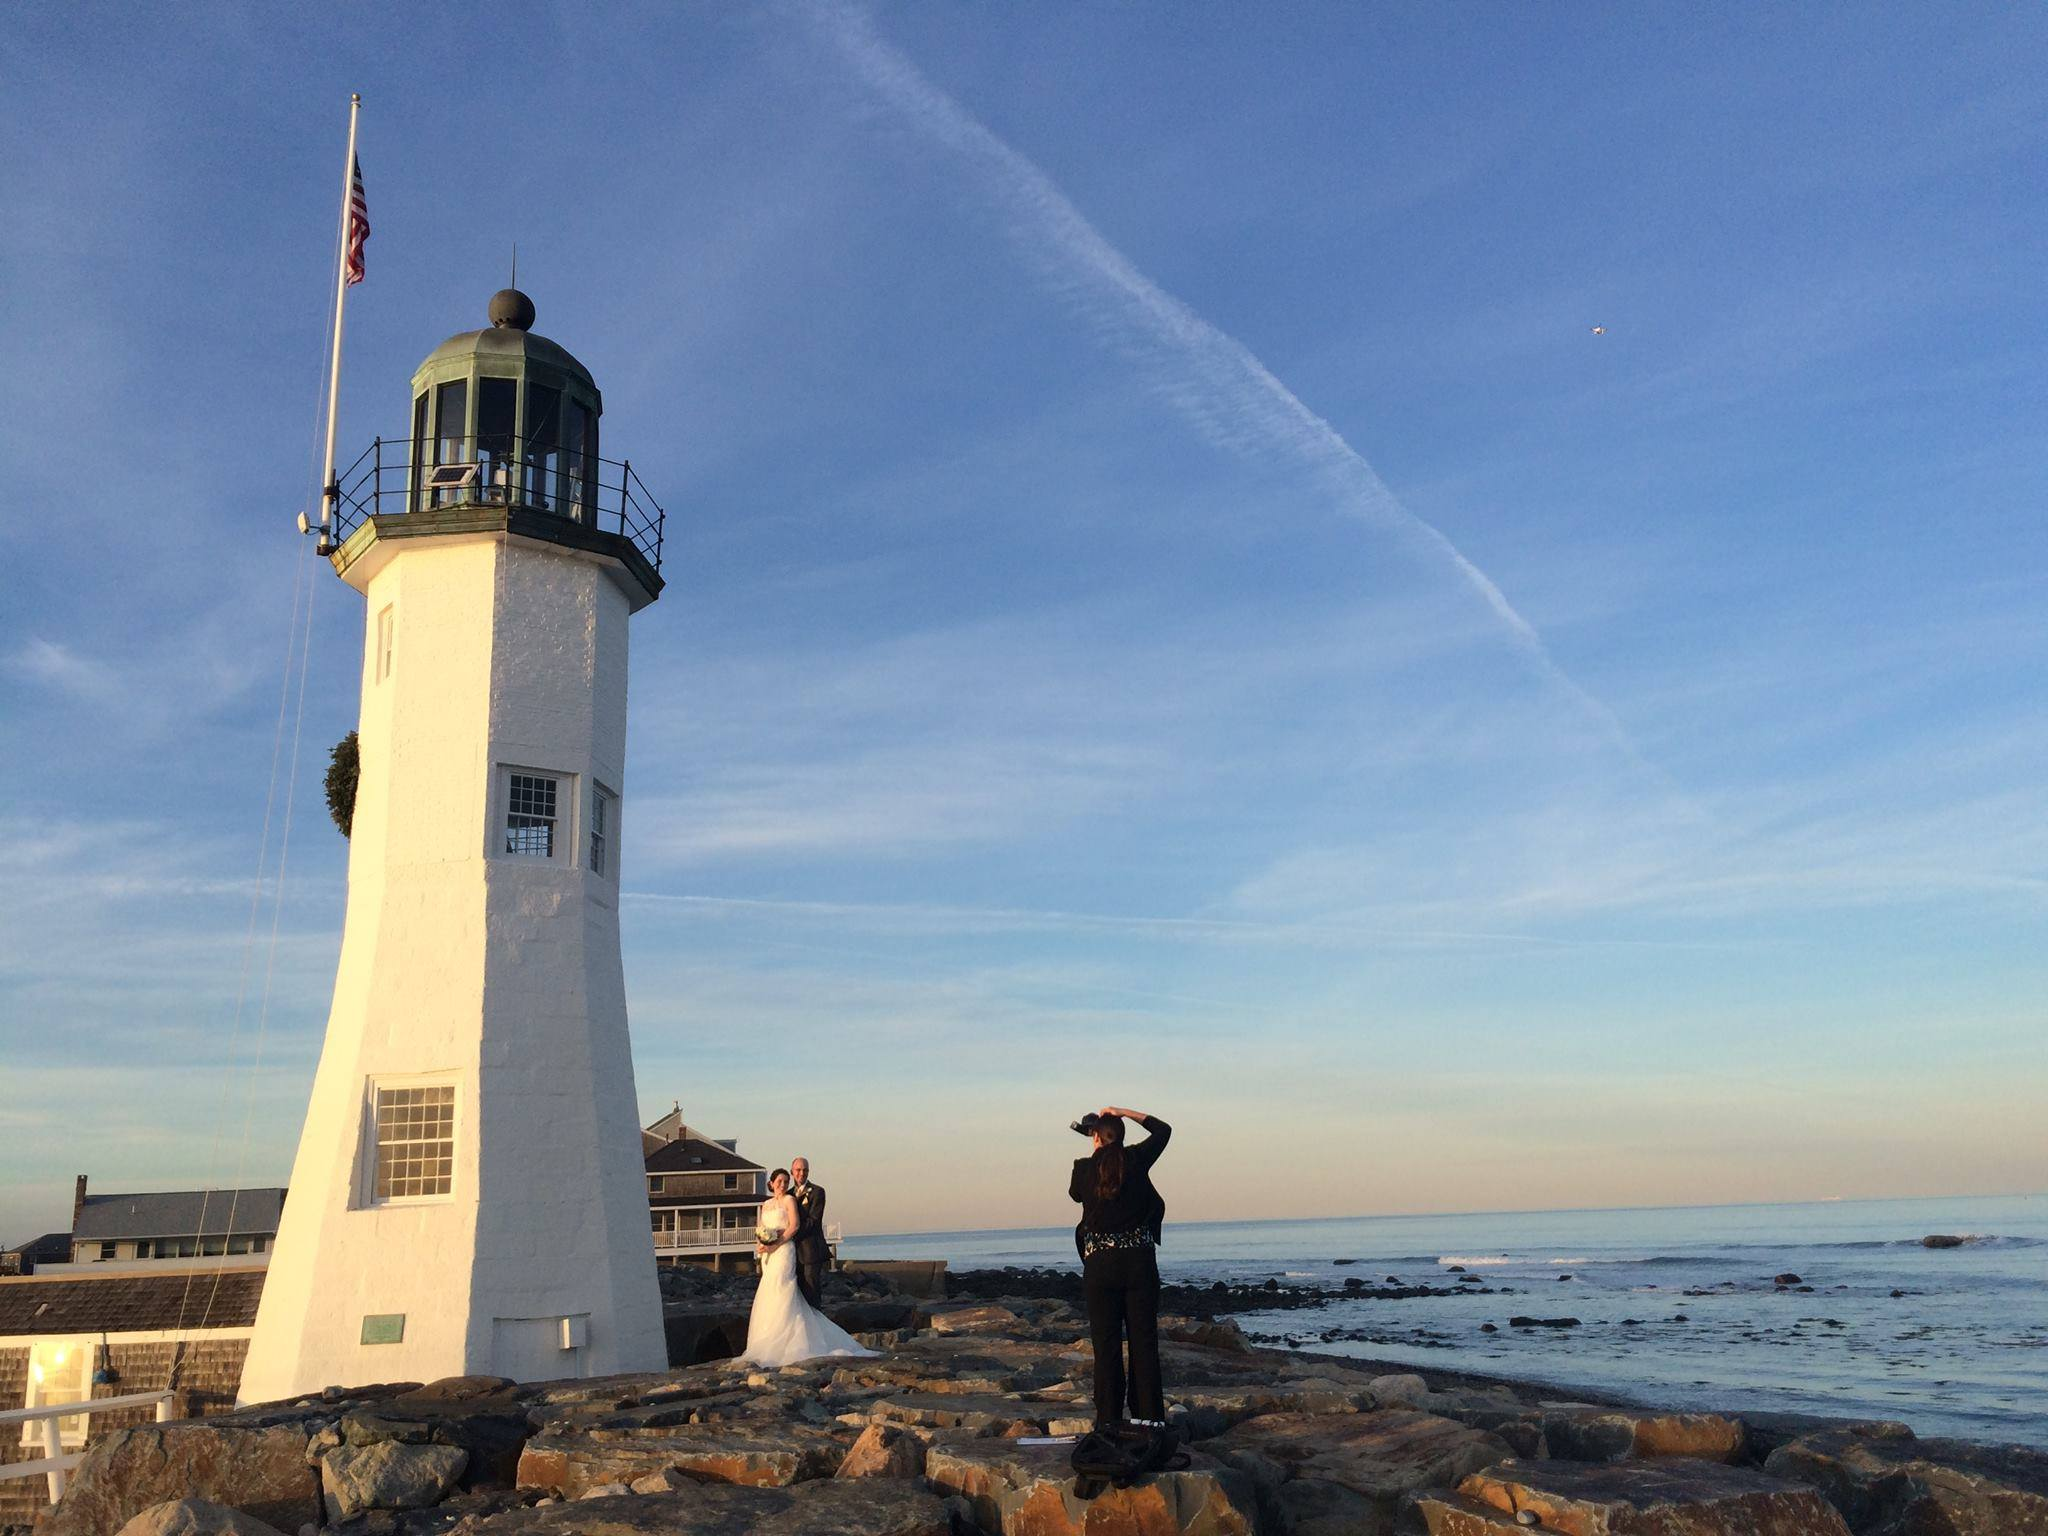 Shooting photography at The Old Scituate Lighthouse, Scituate Ma